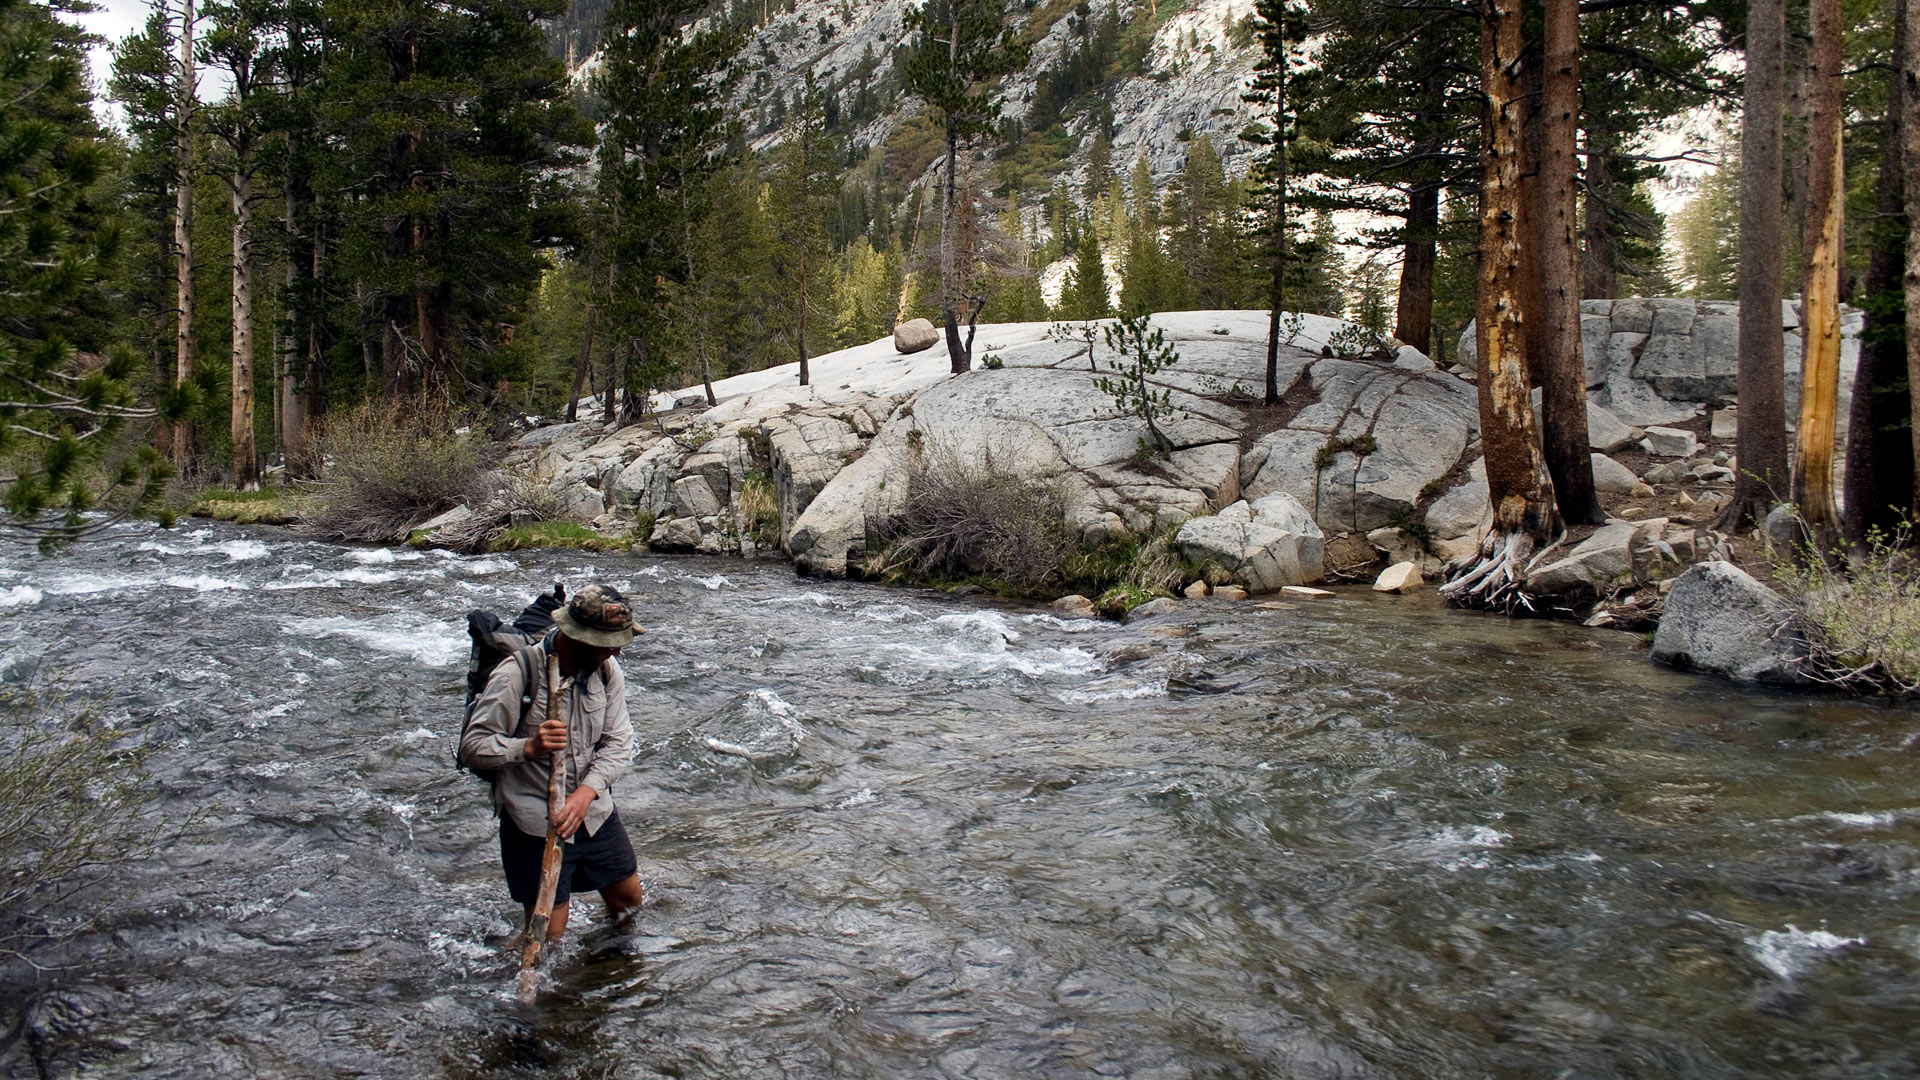 Three points of contact while crossing a creek. Photo by Ryan Weidert.